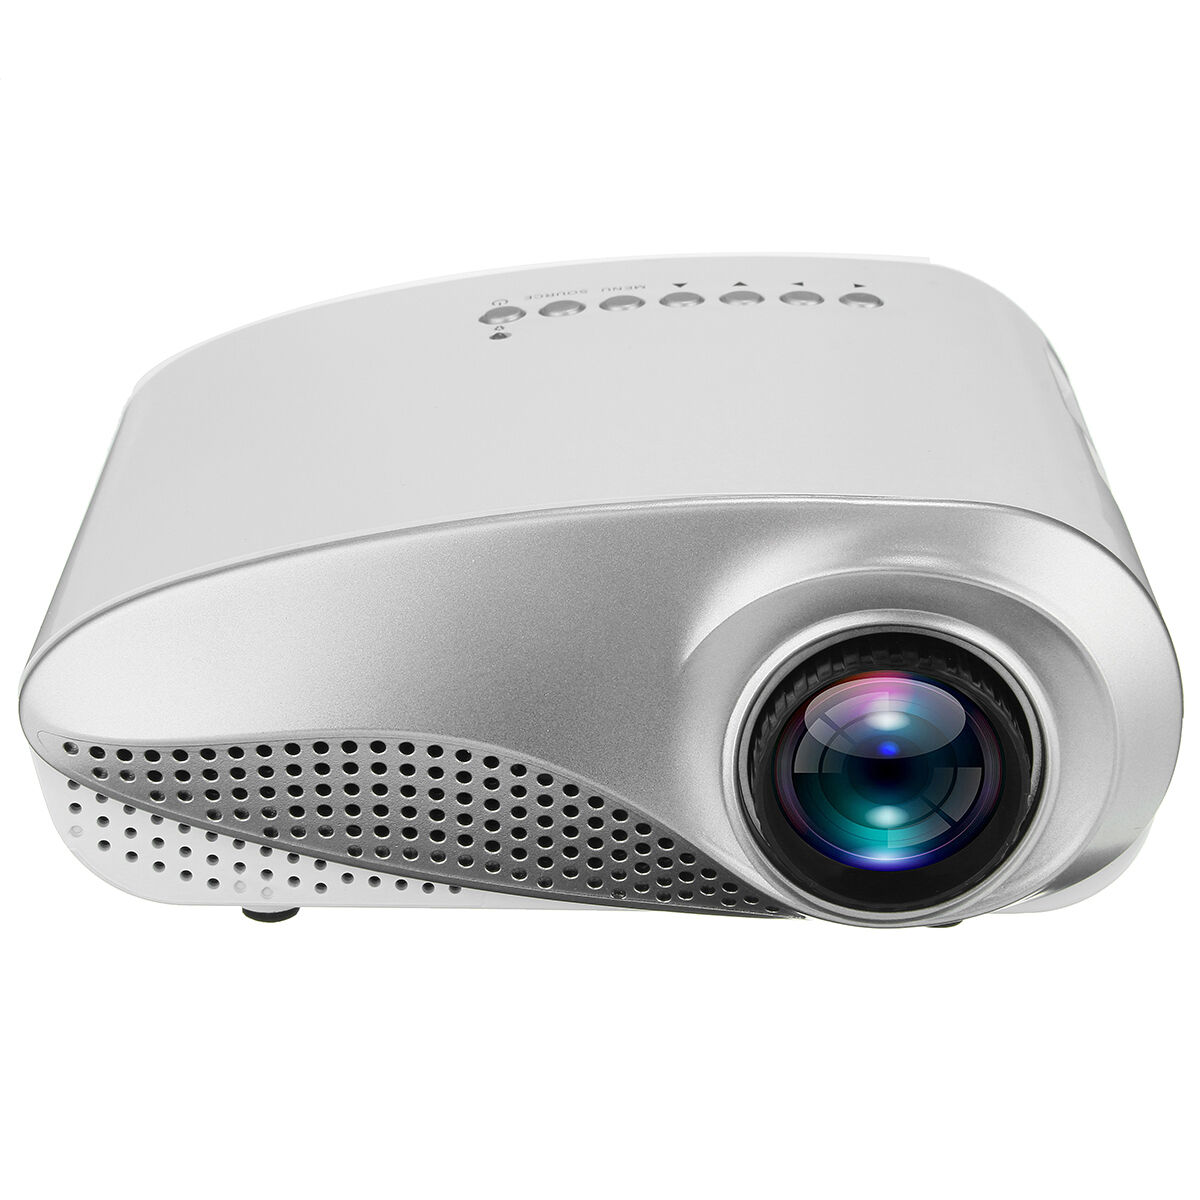 1080p Hd Led Mini Projector Multimedia Home Theater Cinema: 3D 1080P HD LED LCD Mini Projector Multimedia Home Theater